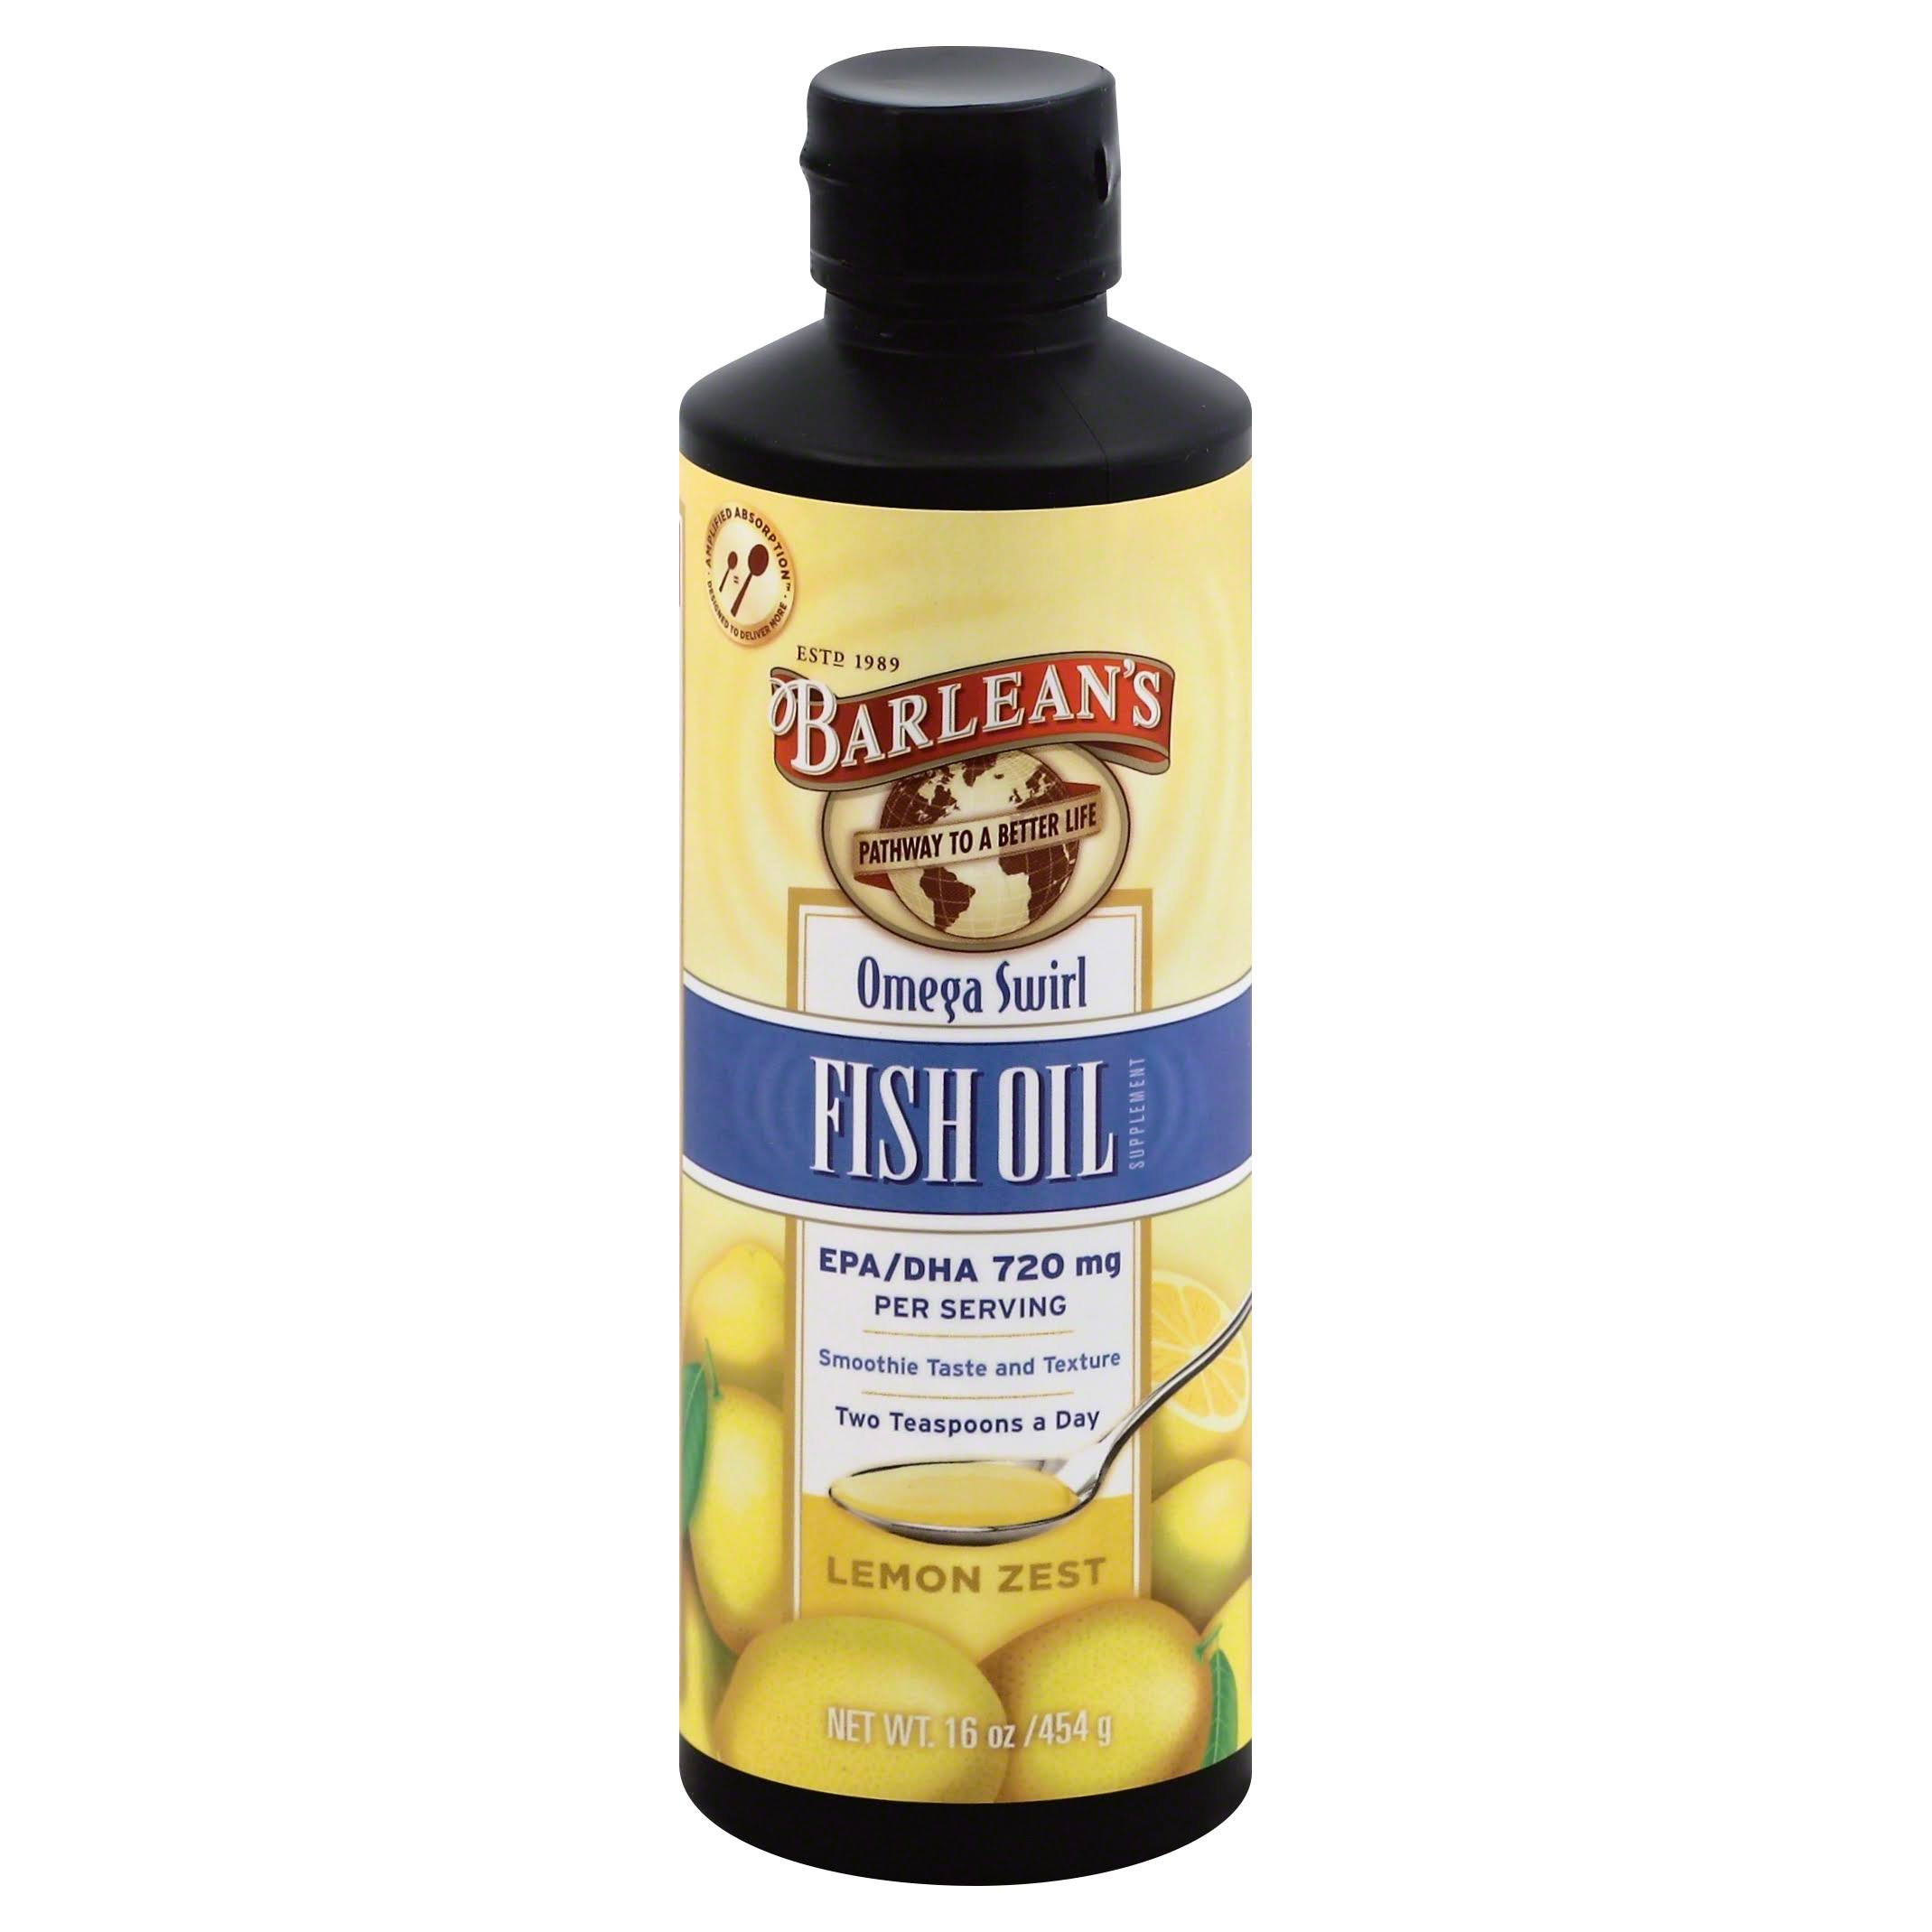 Barlean's Omega Swirl Fish Oil - Lemon Zest, 16oz